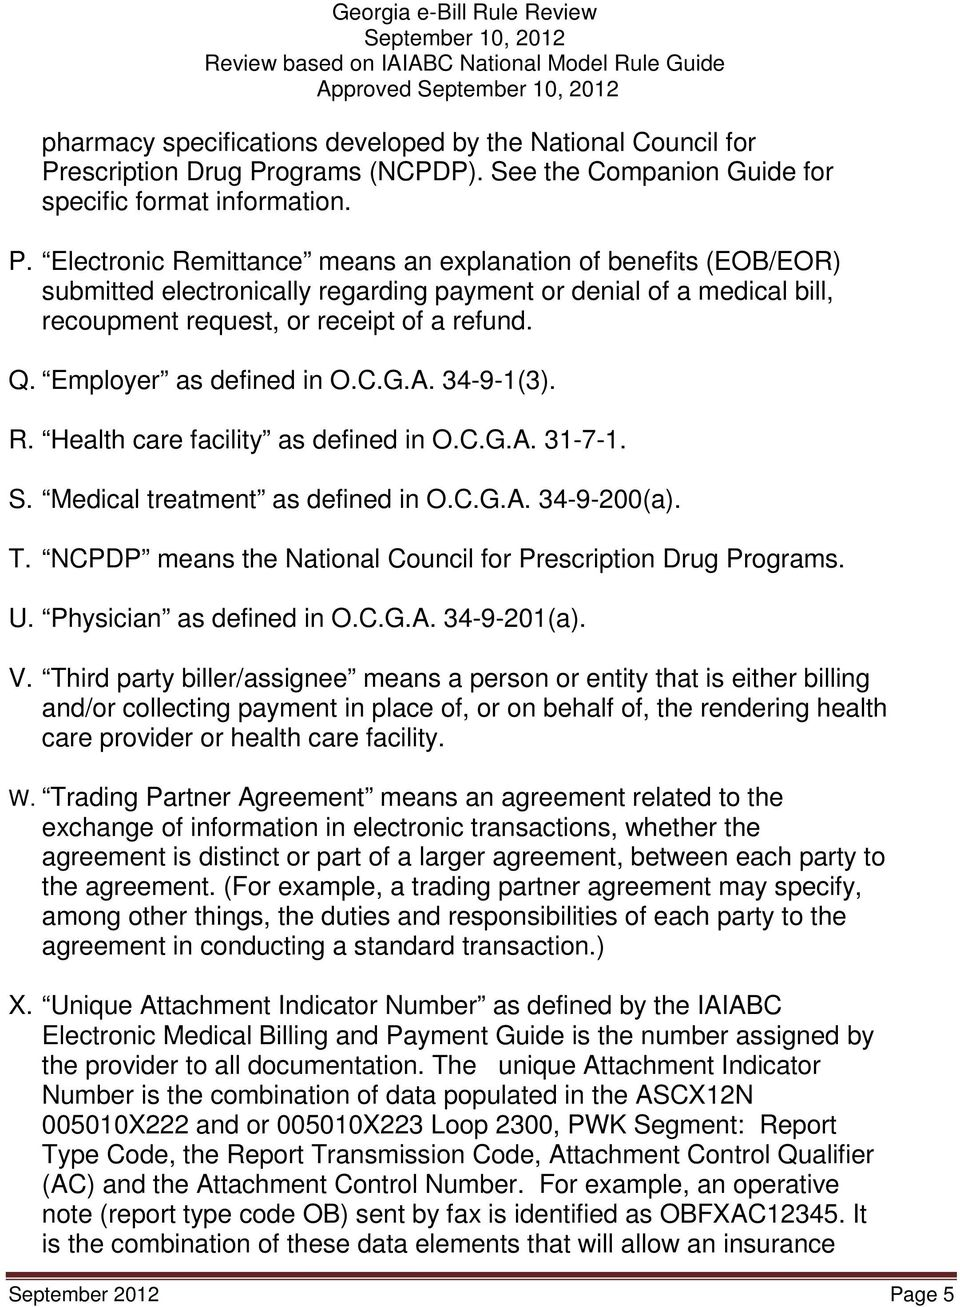 Q. Employer as defined in O.C.G.A. 34-9-1(3). R. Health care facility as defined in O.C.G.A. 31-7-1. S. Medical treatment as defined in O.C.G.A. 34-9-200(a). T.